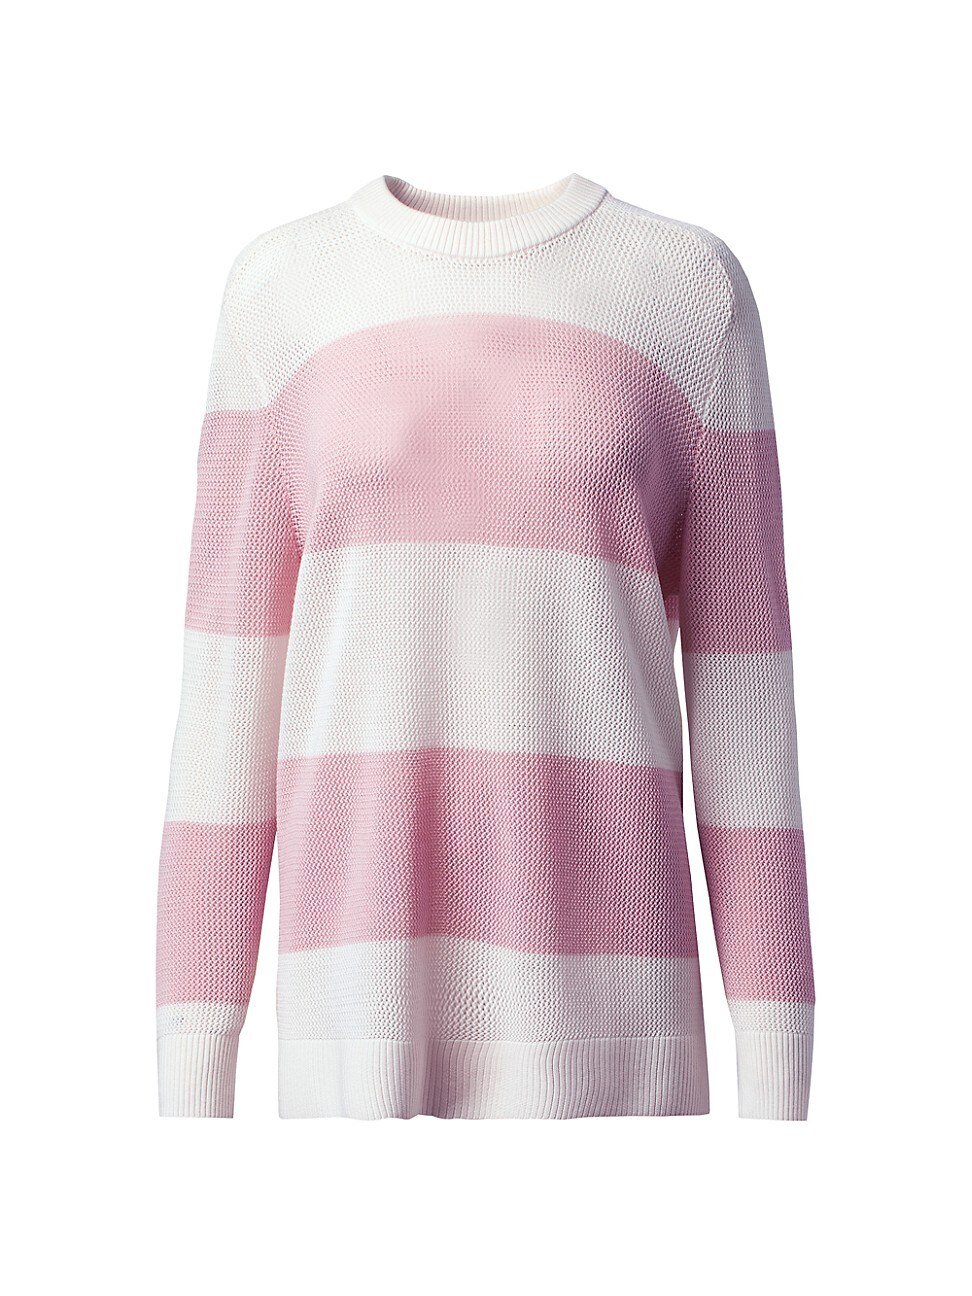 Akris Punto WOMEN'S RESPONSIBLE MERINO WOOL STRIPED KNIT SWEATER